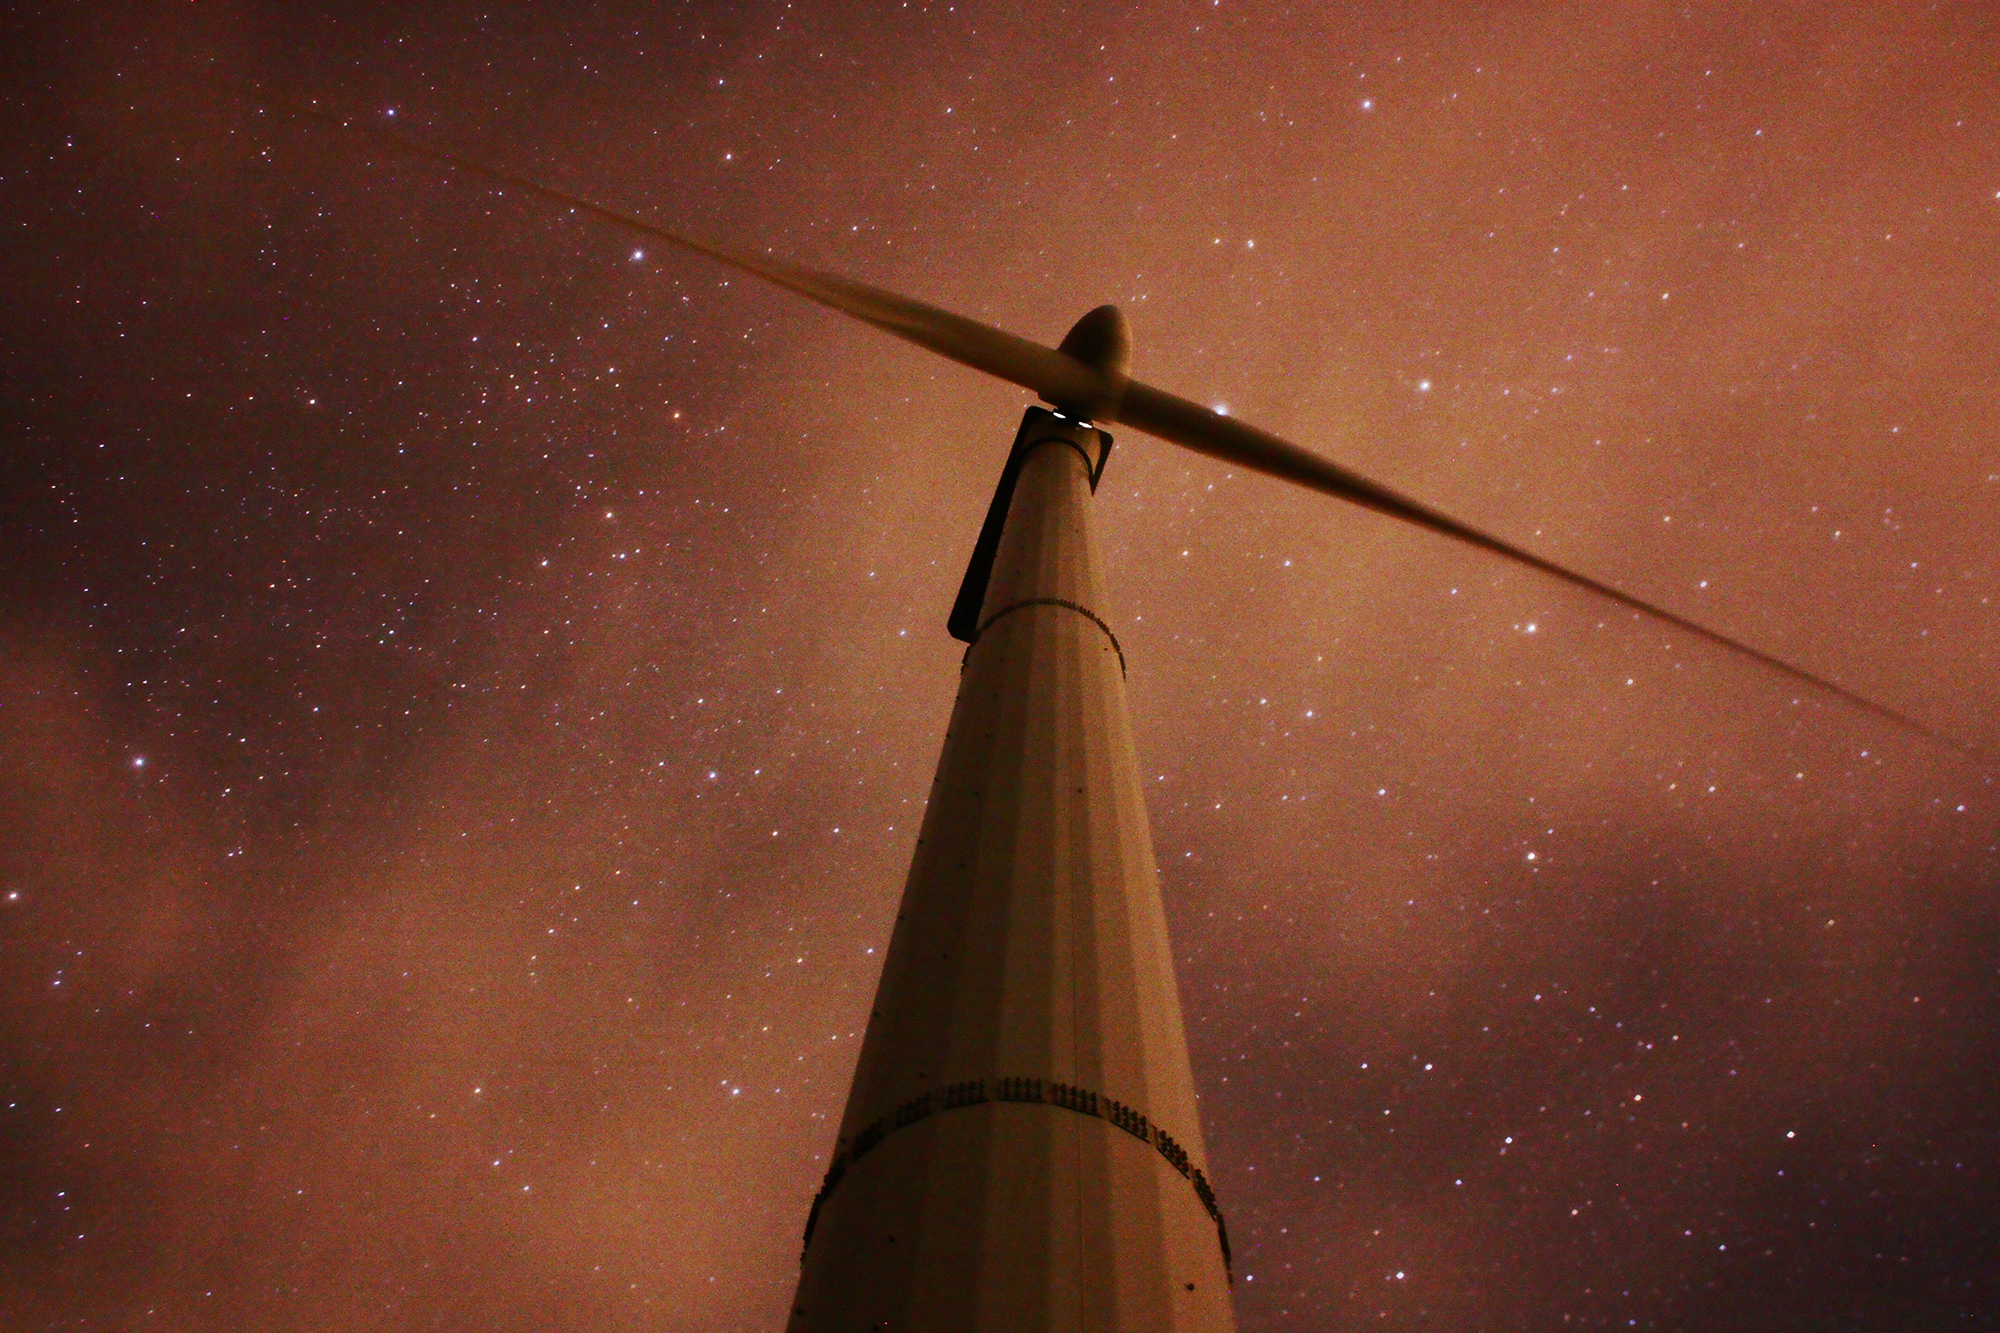 A wind turbine in front of a starry night sky, shot from a low angle.